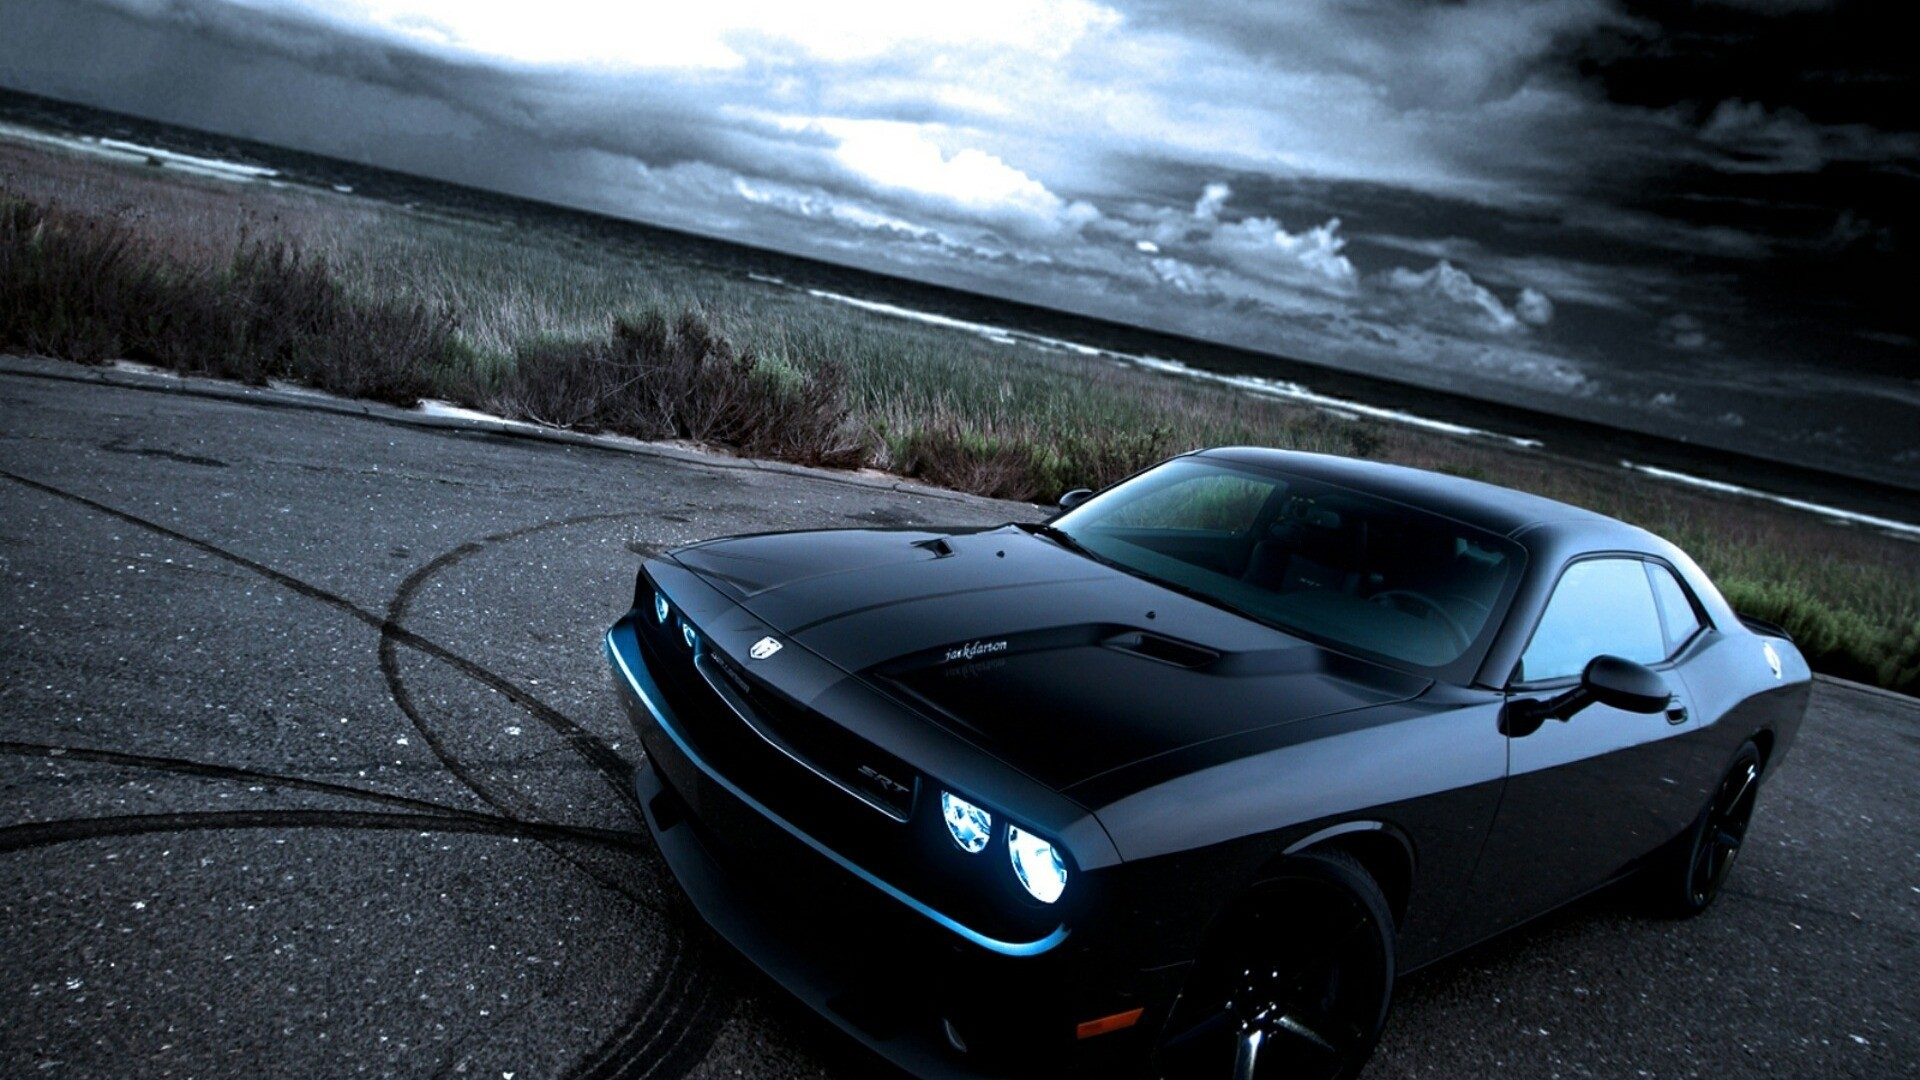 1920x1080 American Black Cars Dodge Dodge Challenger Dodge Challenger Srt Front Angle  View Muscle Cars. hd muscle car wallpapers  danasrfitop